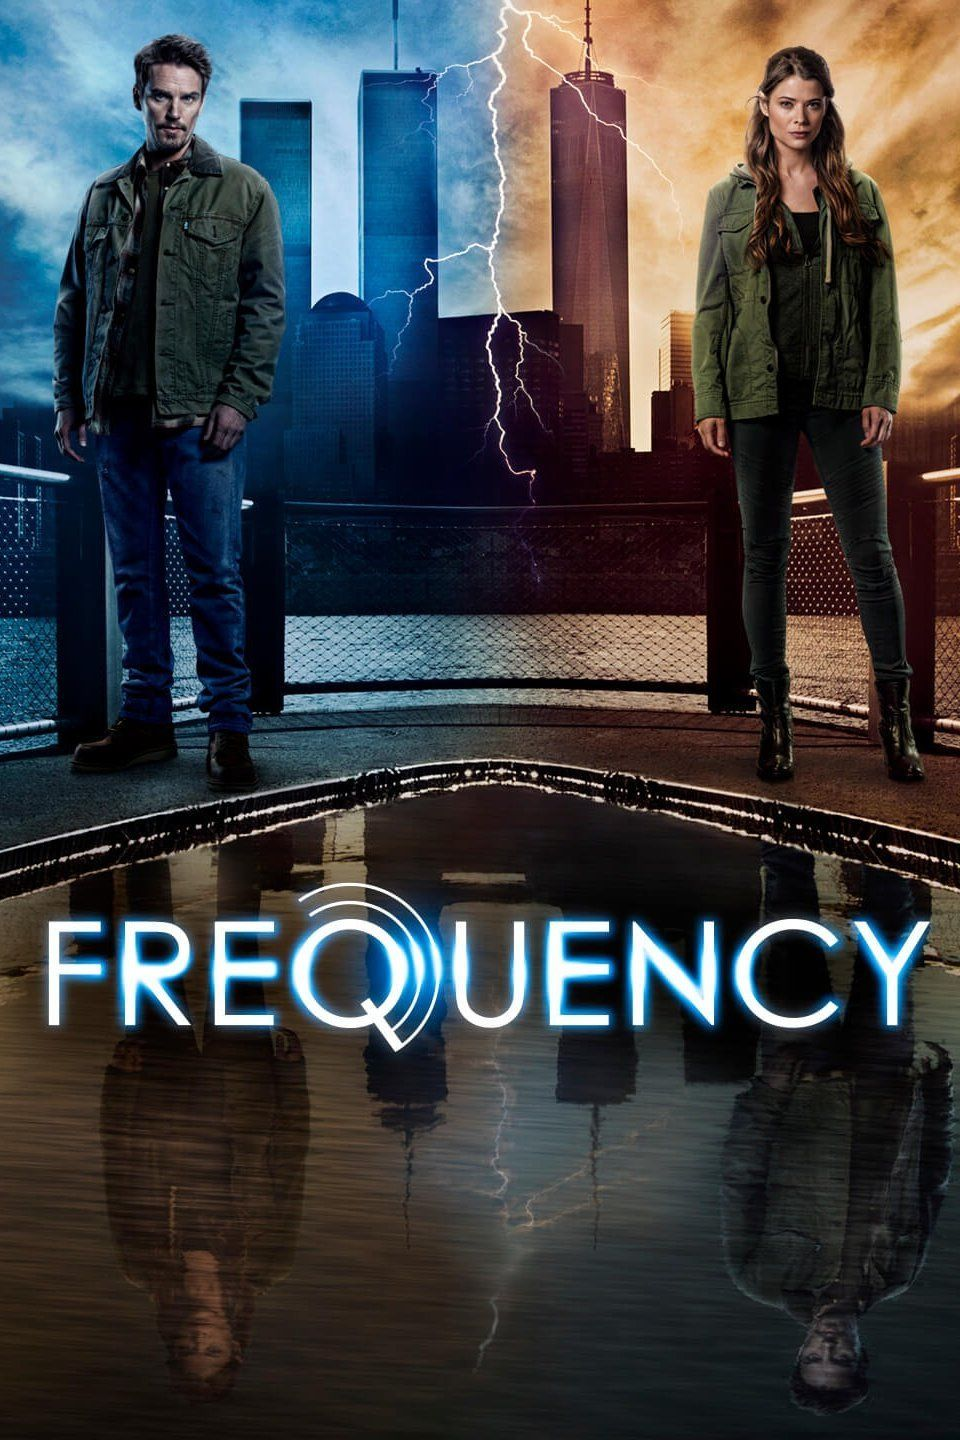 Frequency Tv Frequency Cw Frequency In 2018 Pinterest Tvs Season 1 And